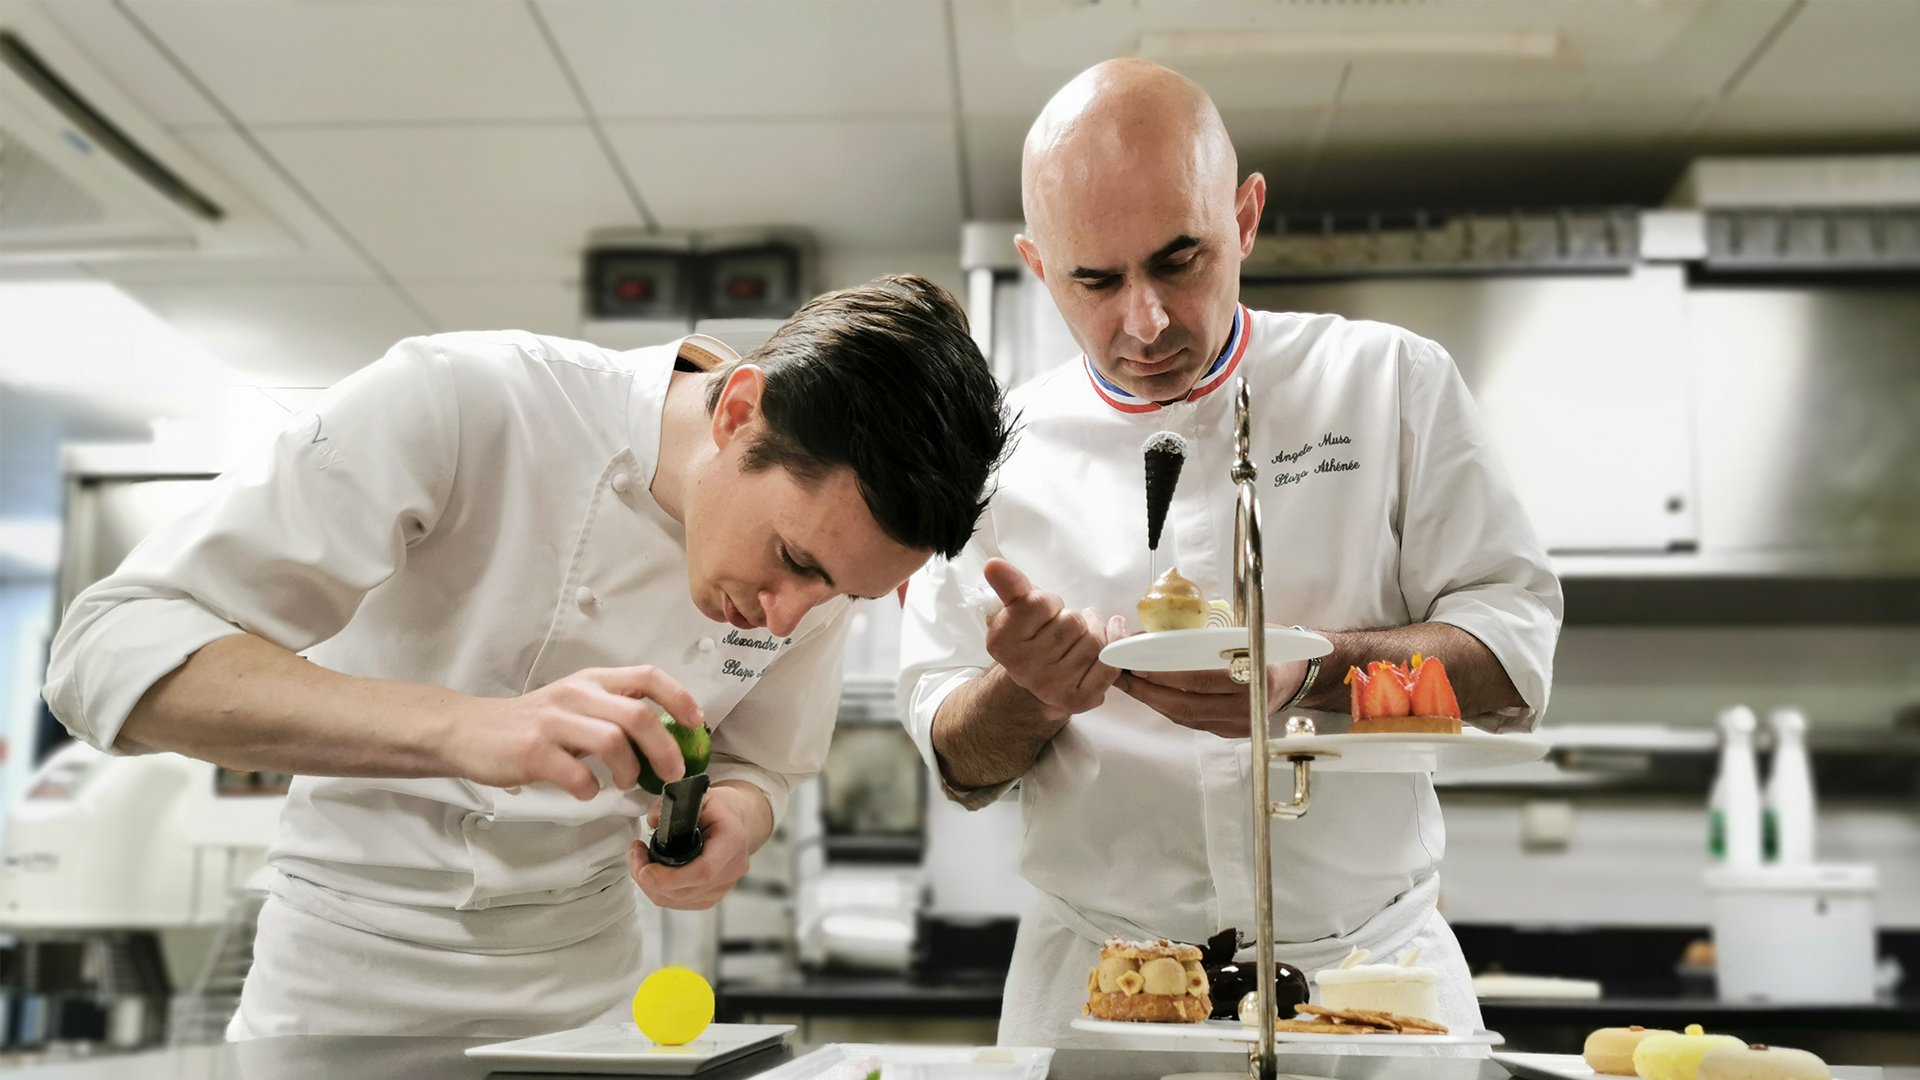 Executive pastry chef Angelo Musa creating an afternoon tea at Hôtel Plaza Athénée